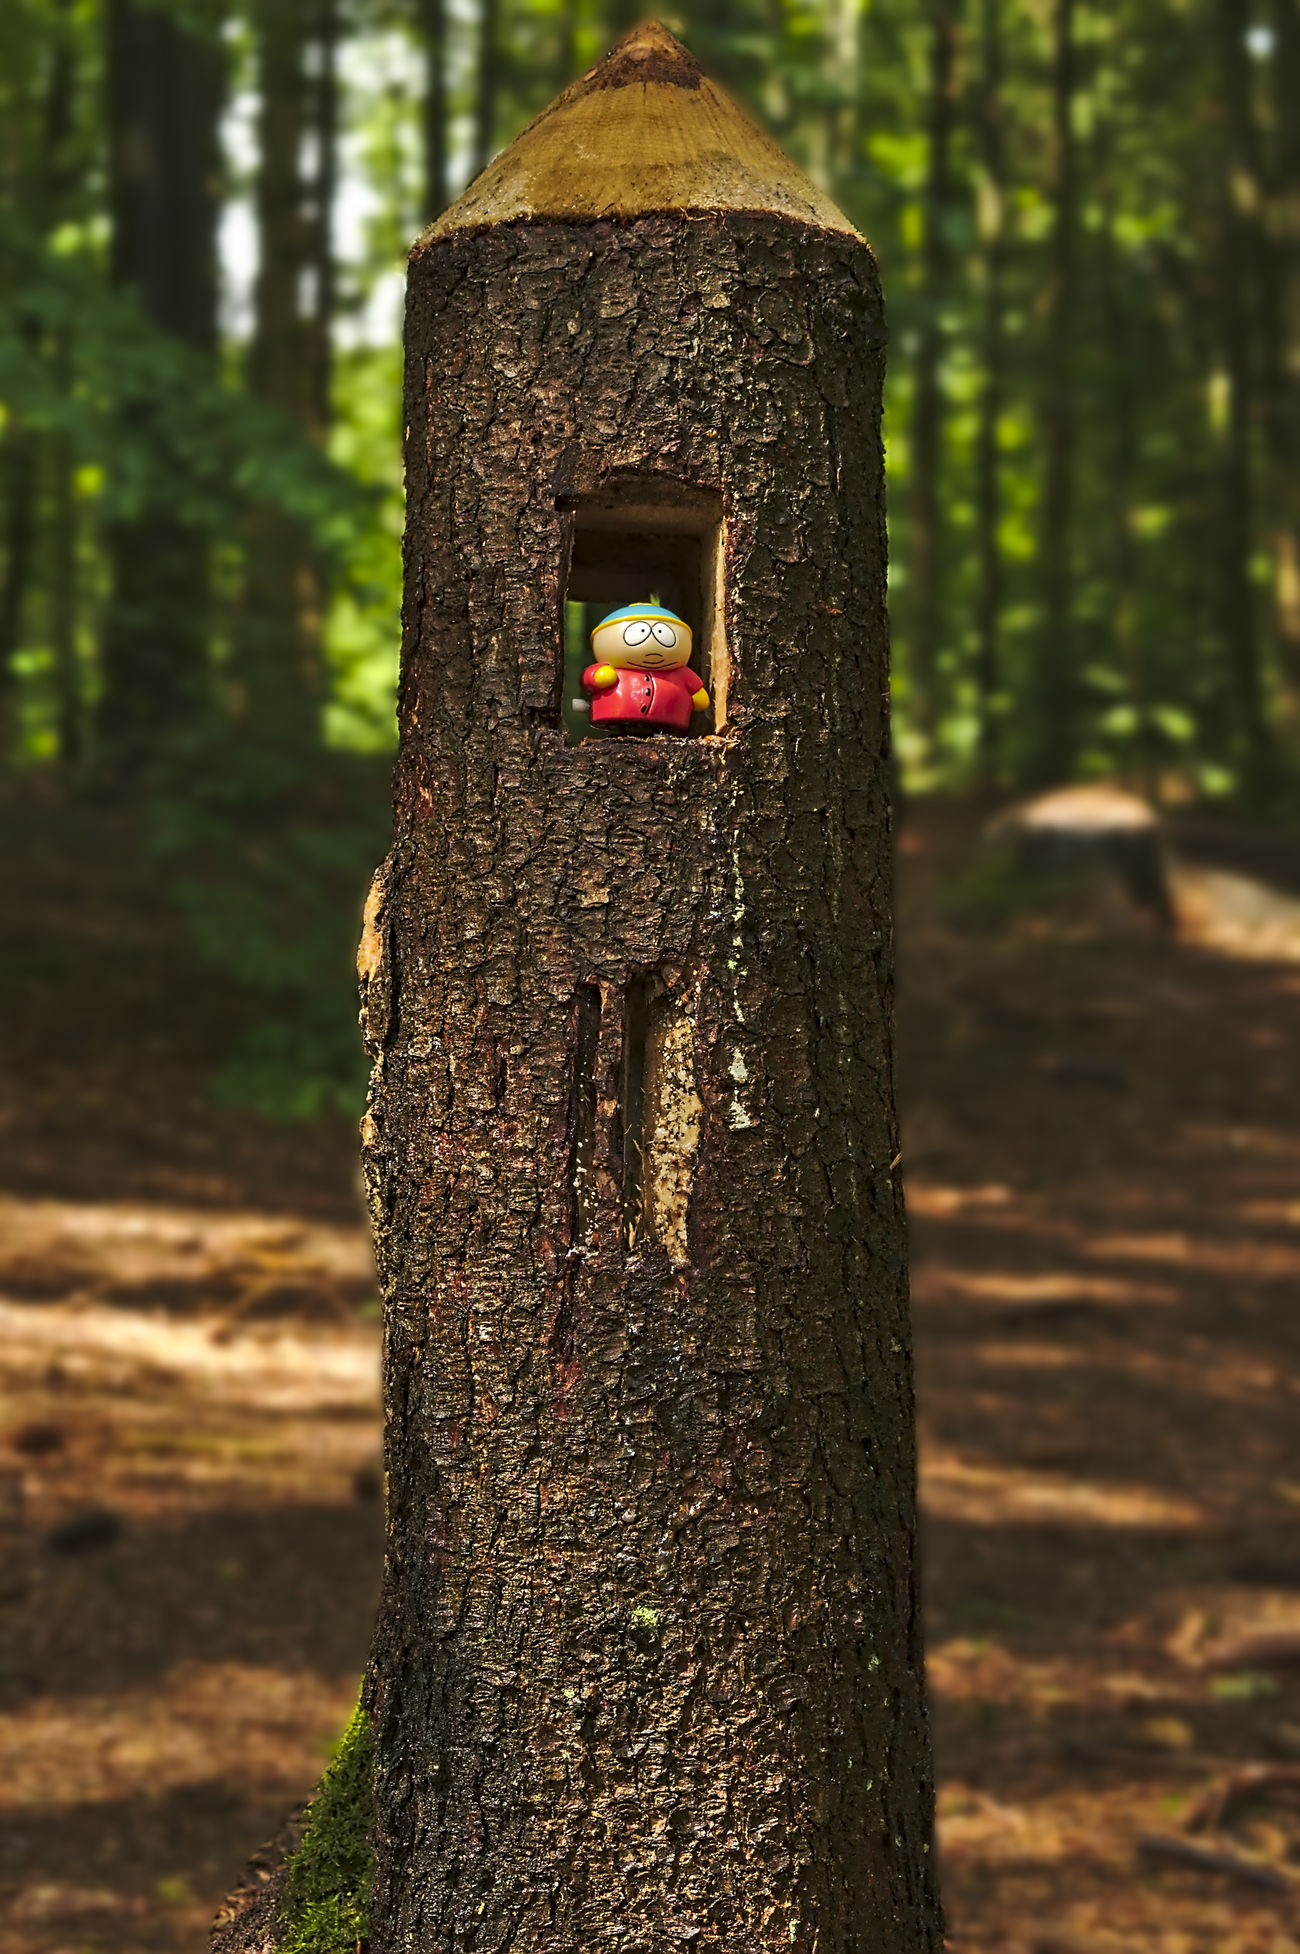 The Round Tower Bark Texture Best Friends Brown Cartman Close-up Eric Cartman Figurine In Nature Focus On Foreground Green In The Forest In The Wood Light And Shadow Nikon Outdoors Selective Focus Southpark Structure And Nature Talking Pictures Toy Adventures Toy Story Tree Trunk Tree Trunk Wood - Material Wood Art Wood Carving